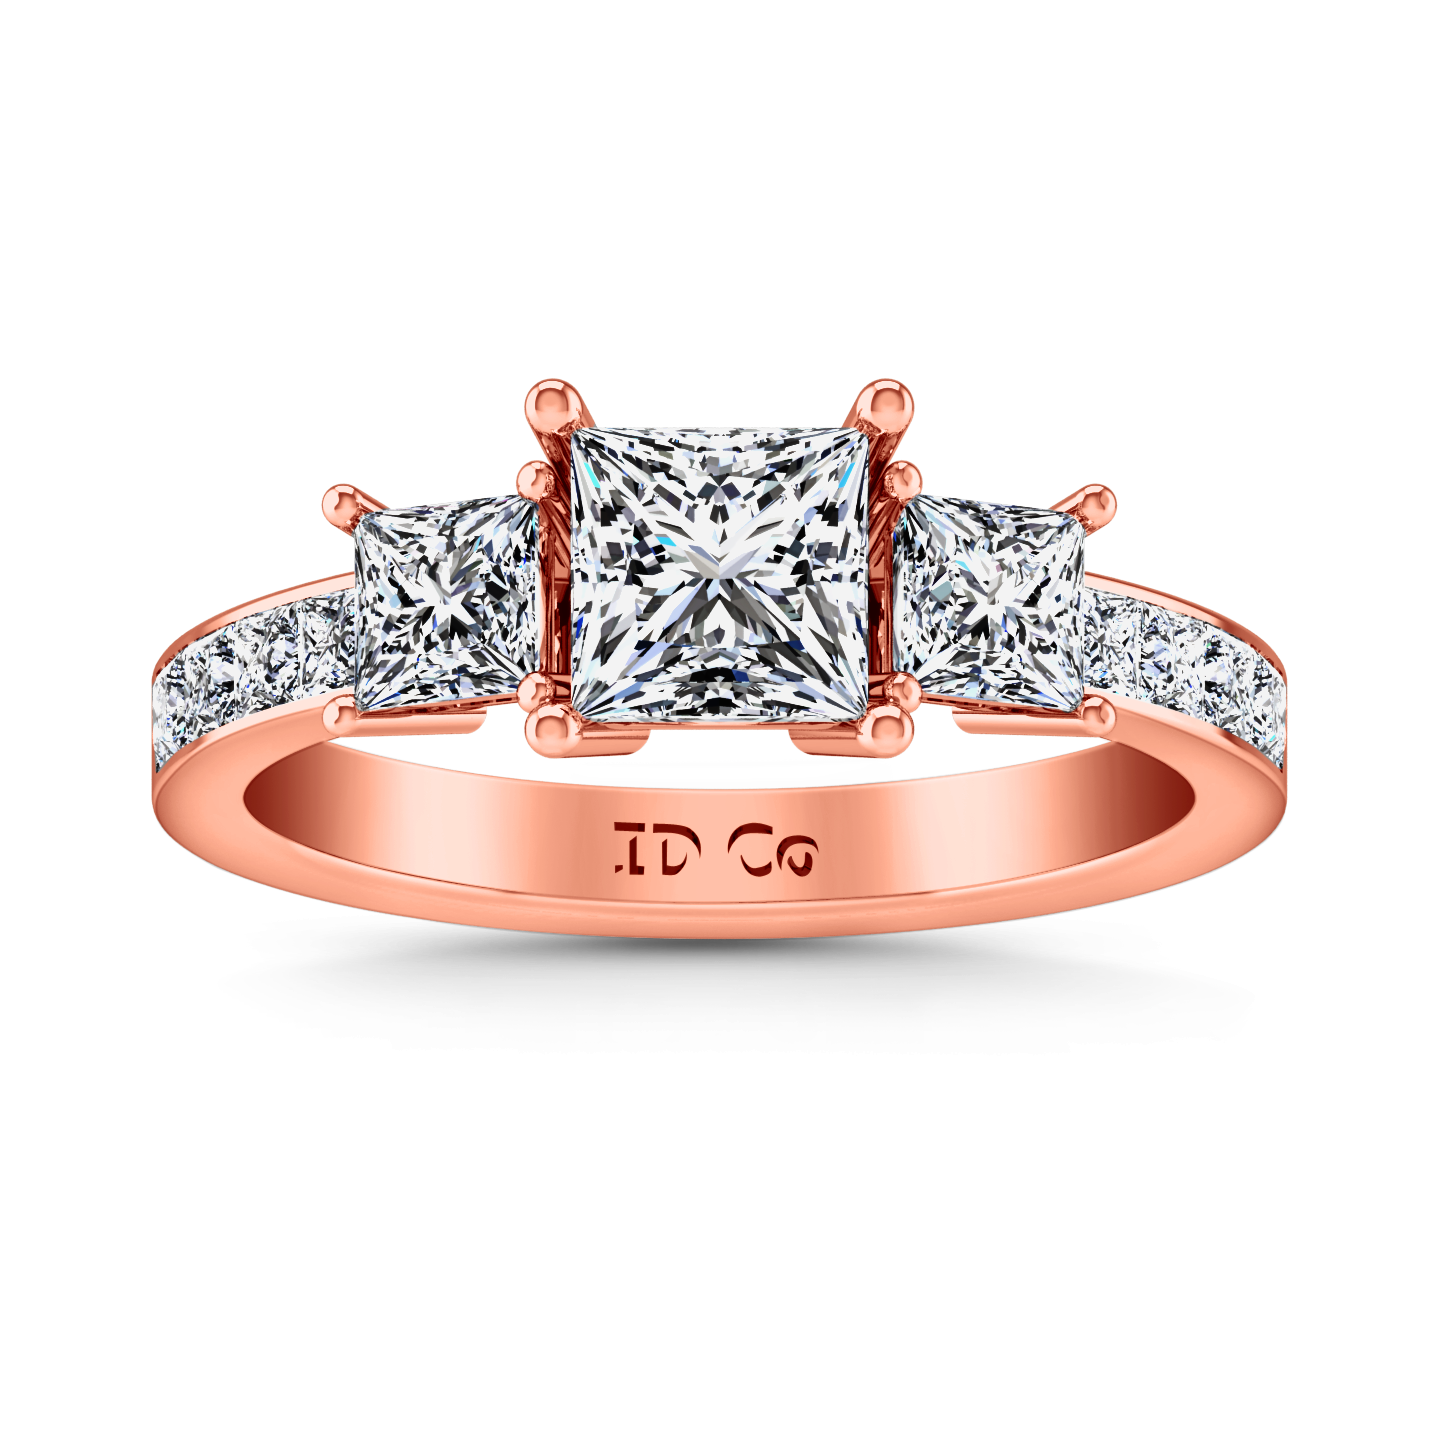 platinum at three wedding diamond org j z dia for mg jewelry engagement rings sale stone id front ring